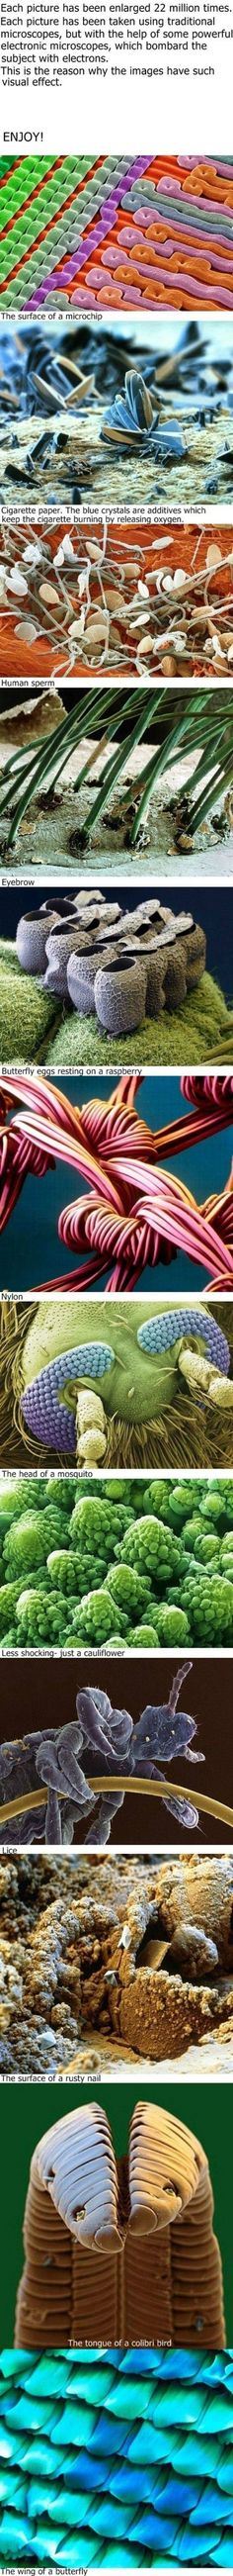 Images magnified under an electron microscope.